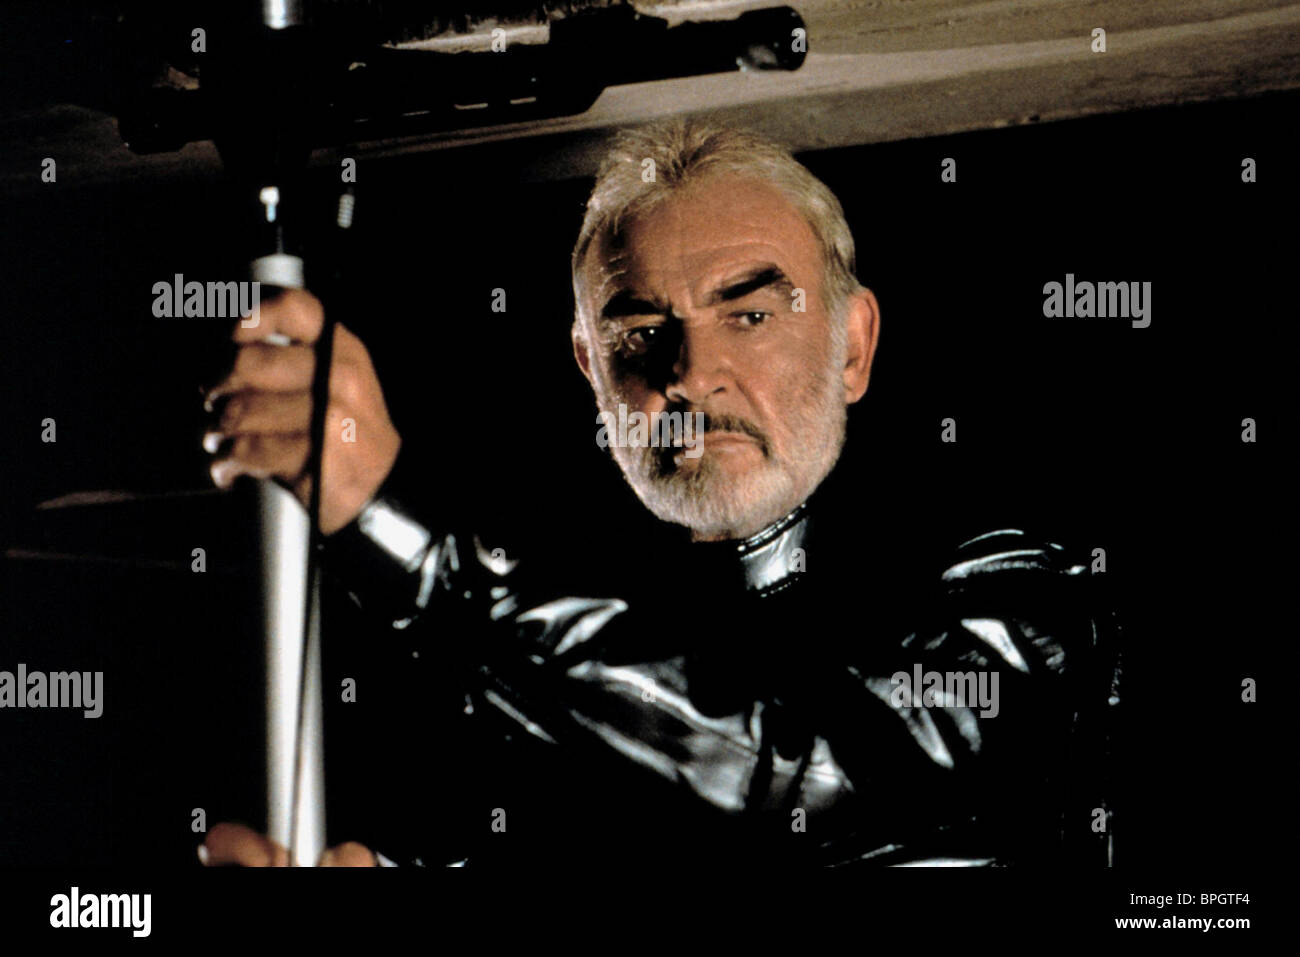 SEAN CONNERY ENTRAPMENT (1999) - Stock Image